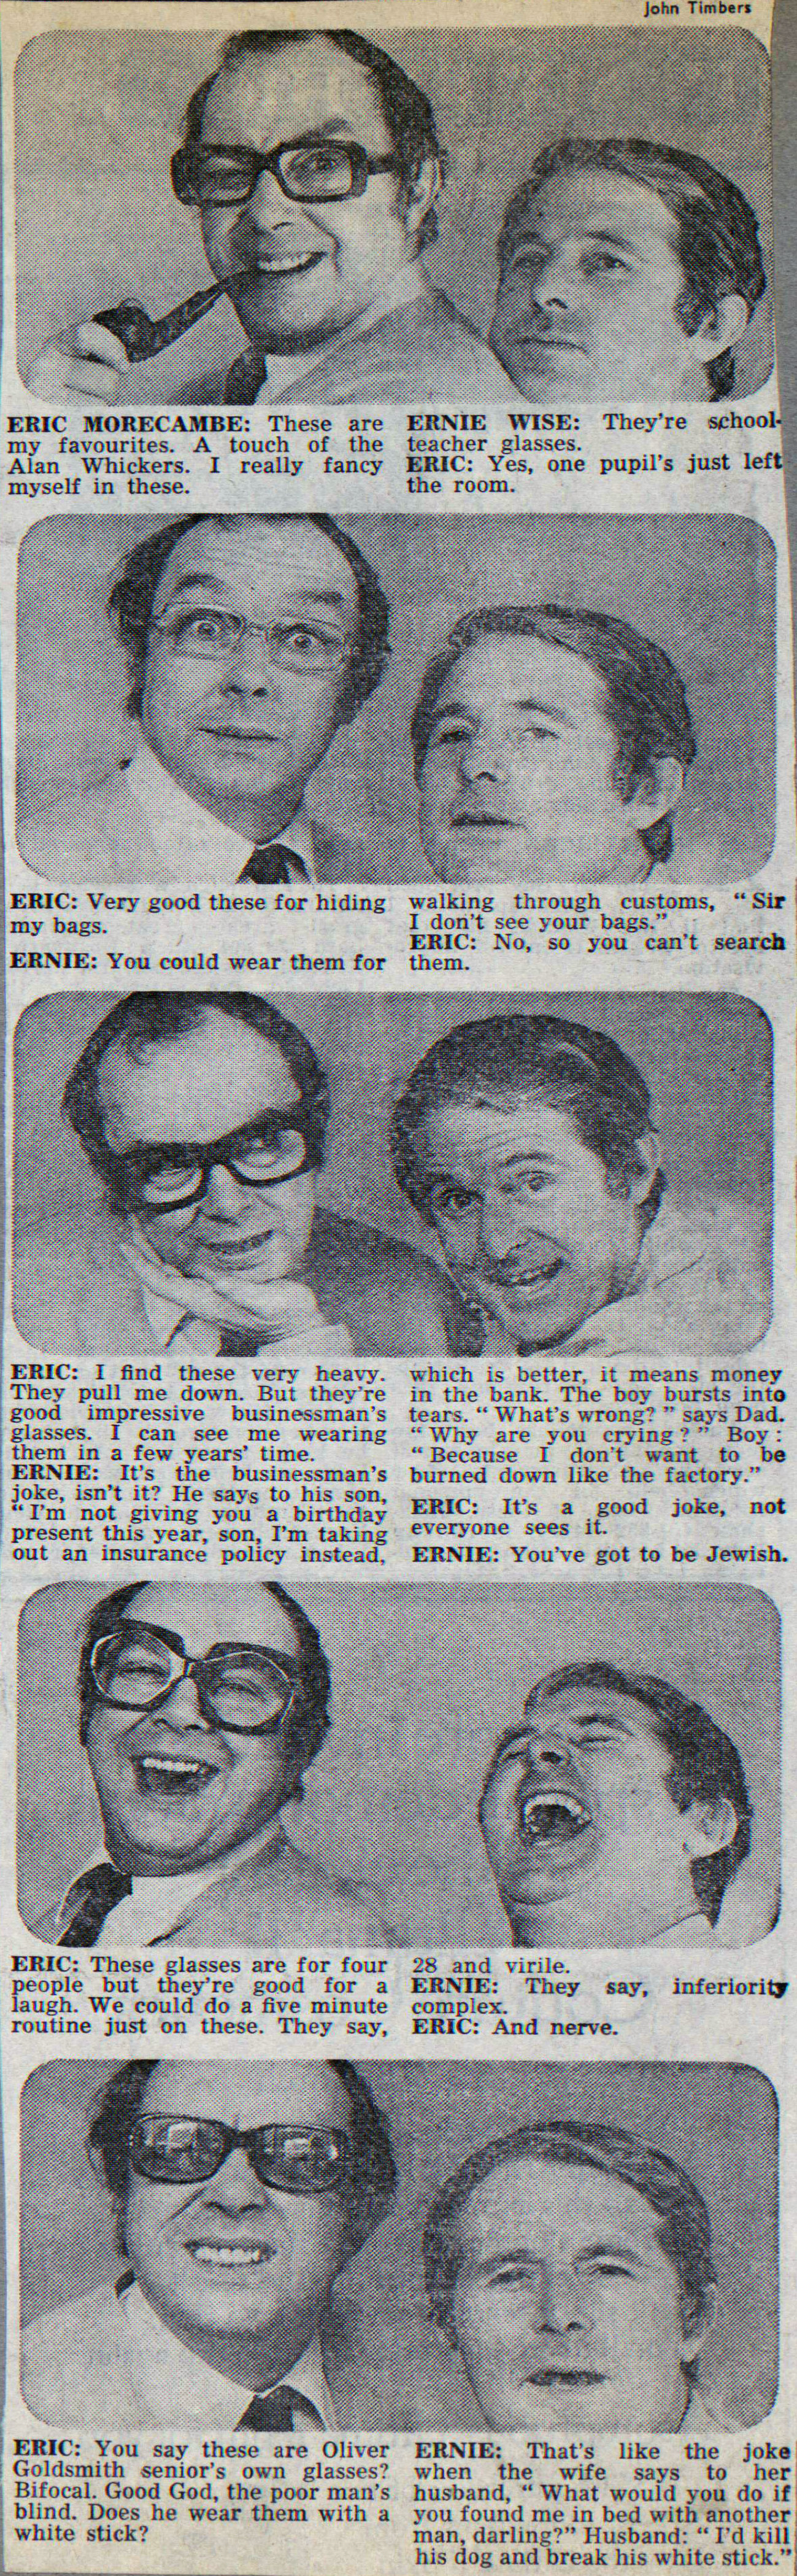 Morecambe-and-wise.jpg